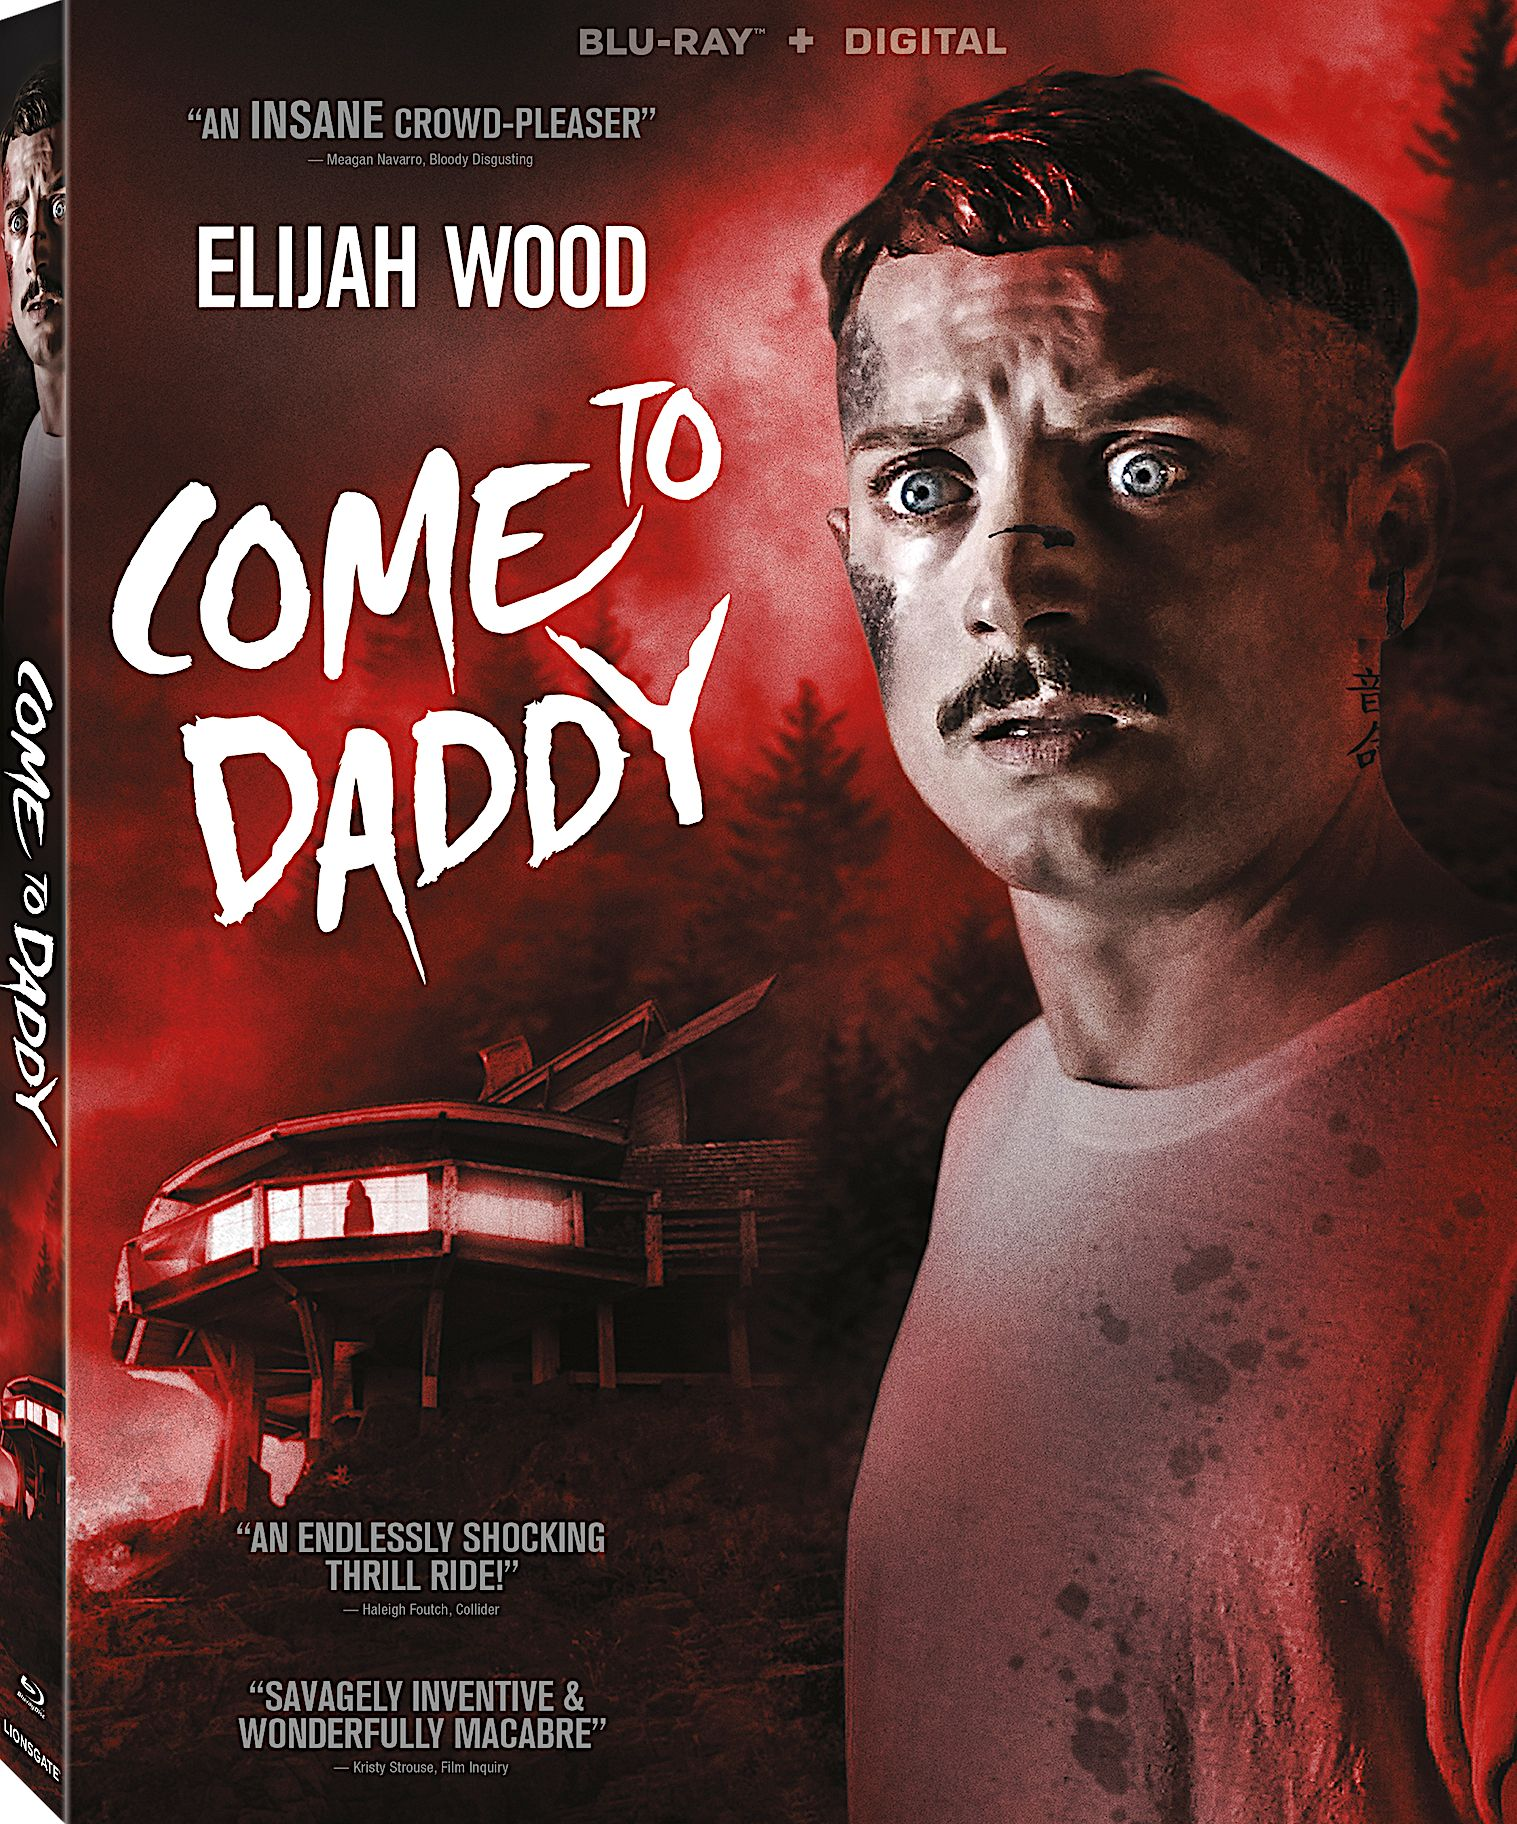 COME TO DADDY BLURAY (LIONSGATE) in 2020 O daddy, Hd